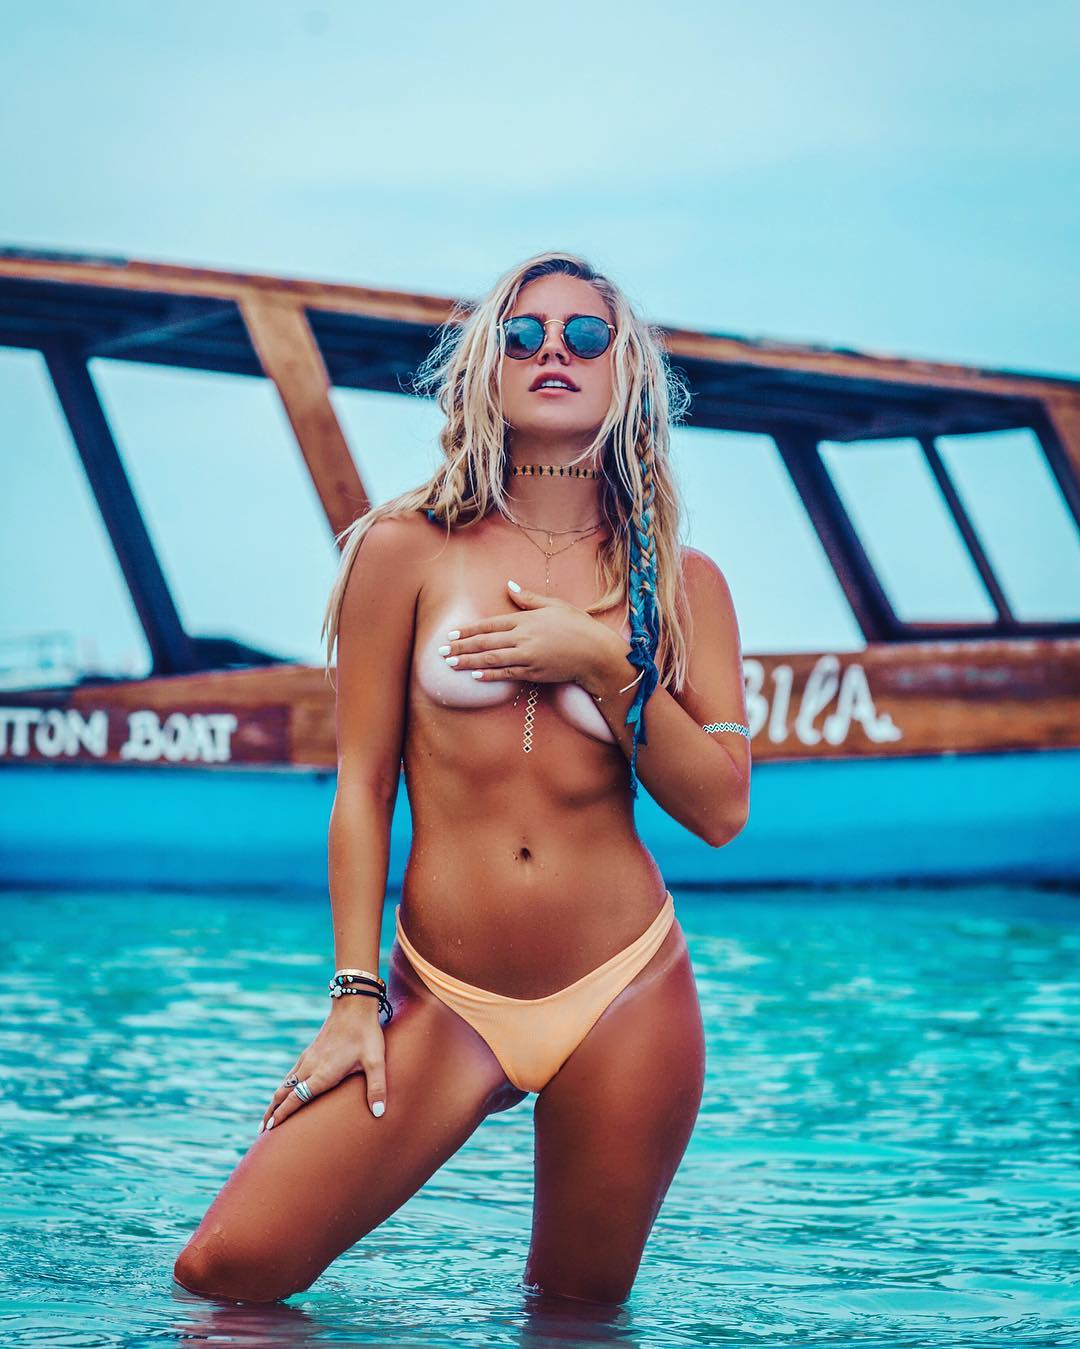 madison louch nude